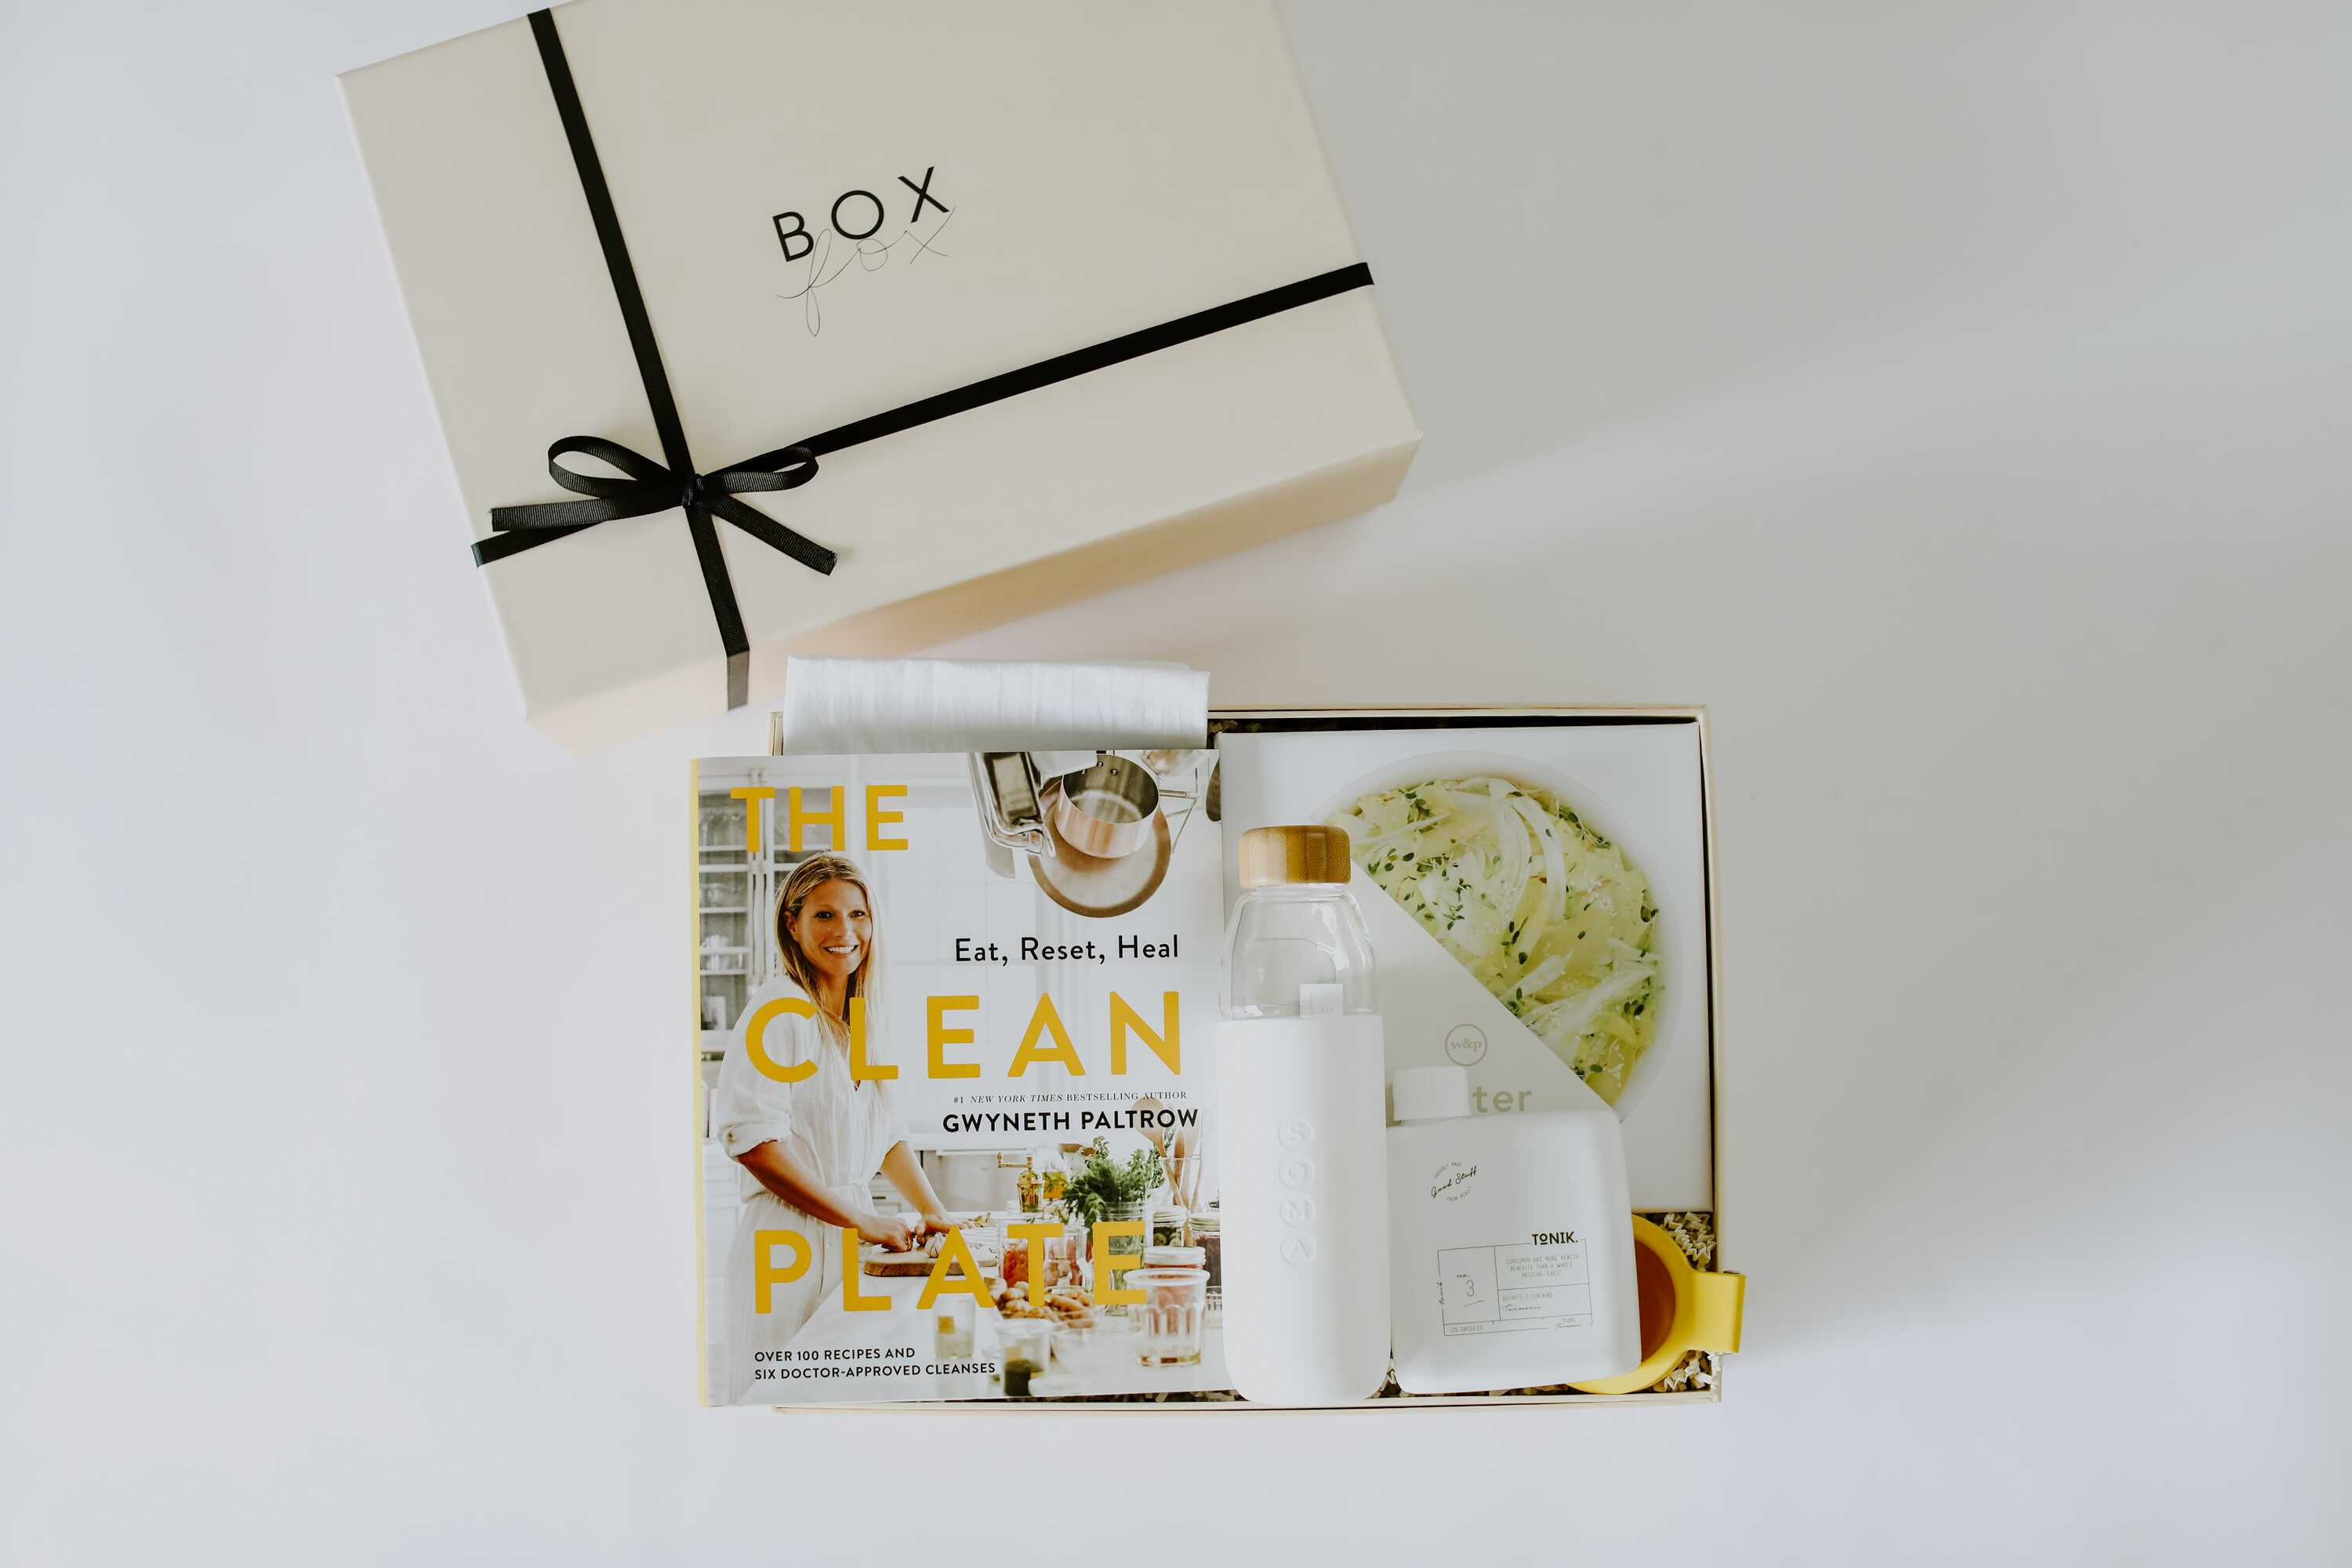 Well-packed gift box with a cookbook, salad plate and water bottle for mother's day gift